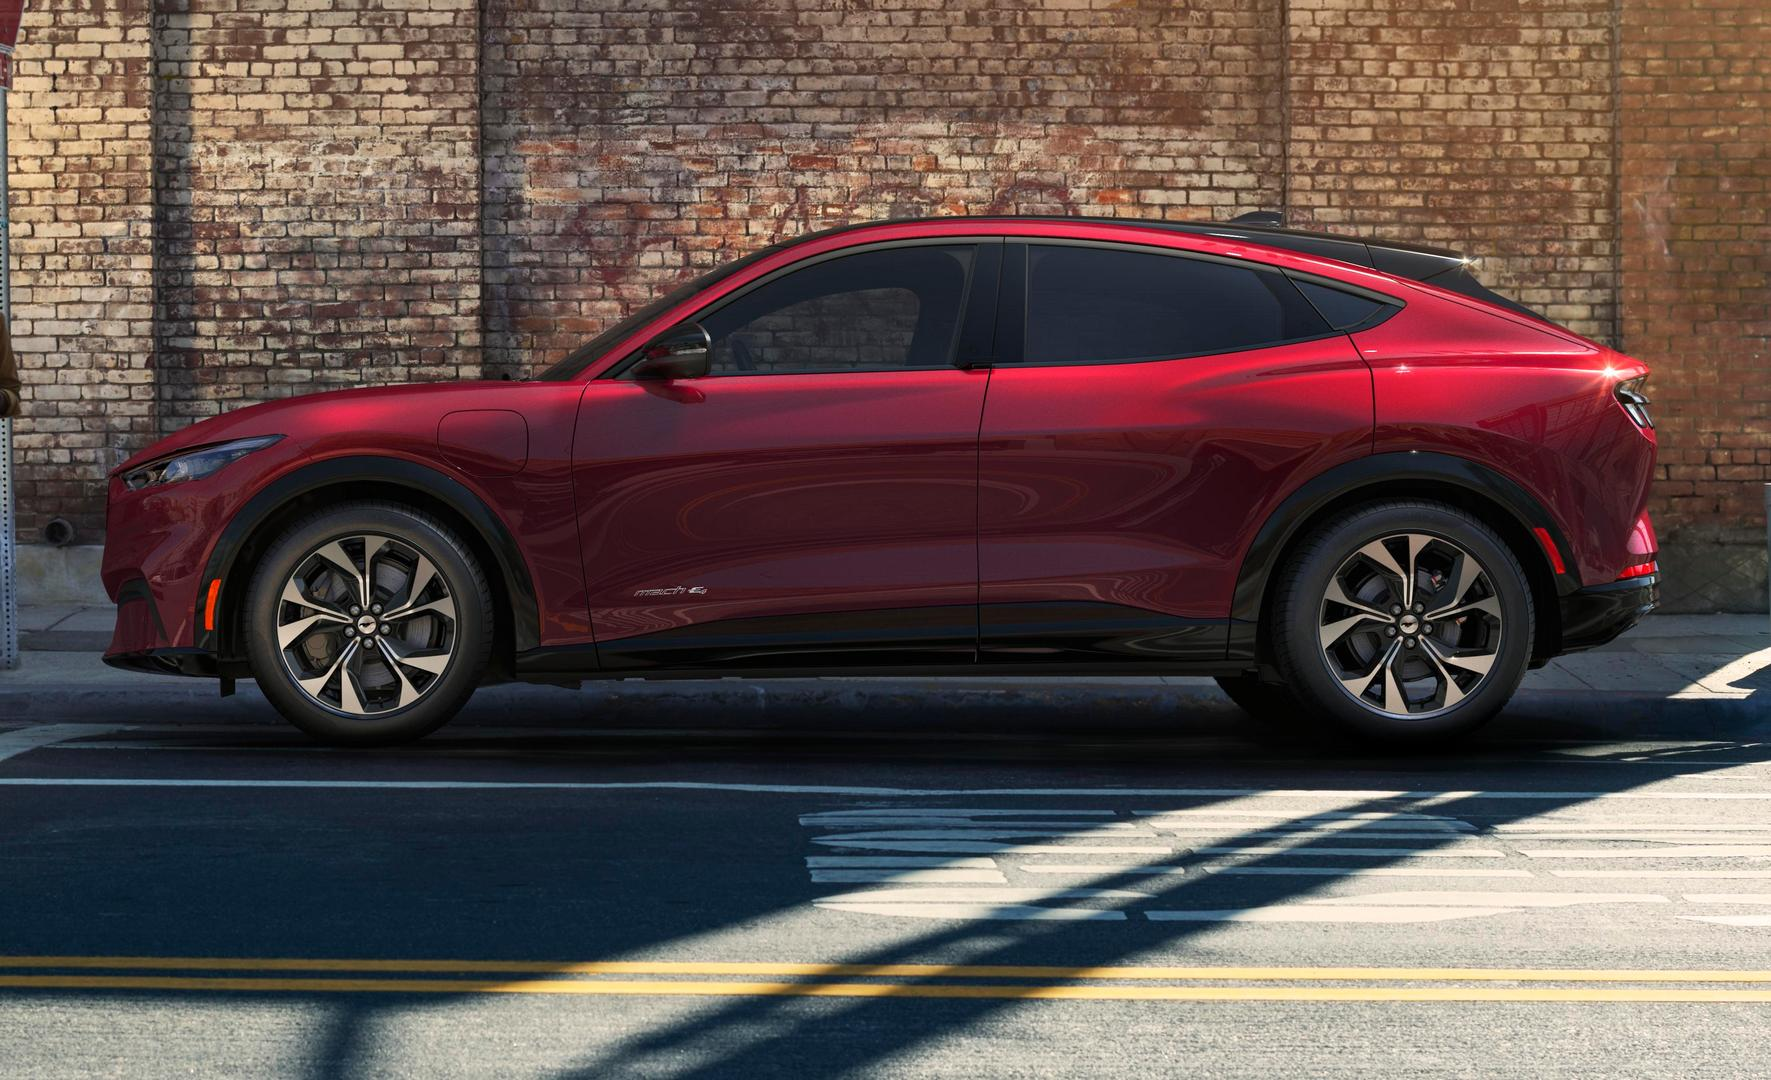 2020 Ford Mustang Mach E All Electric Suv Coupe Revealed Gtspirit